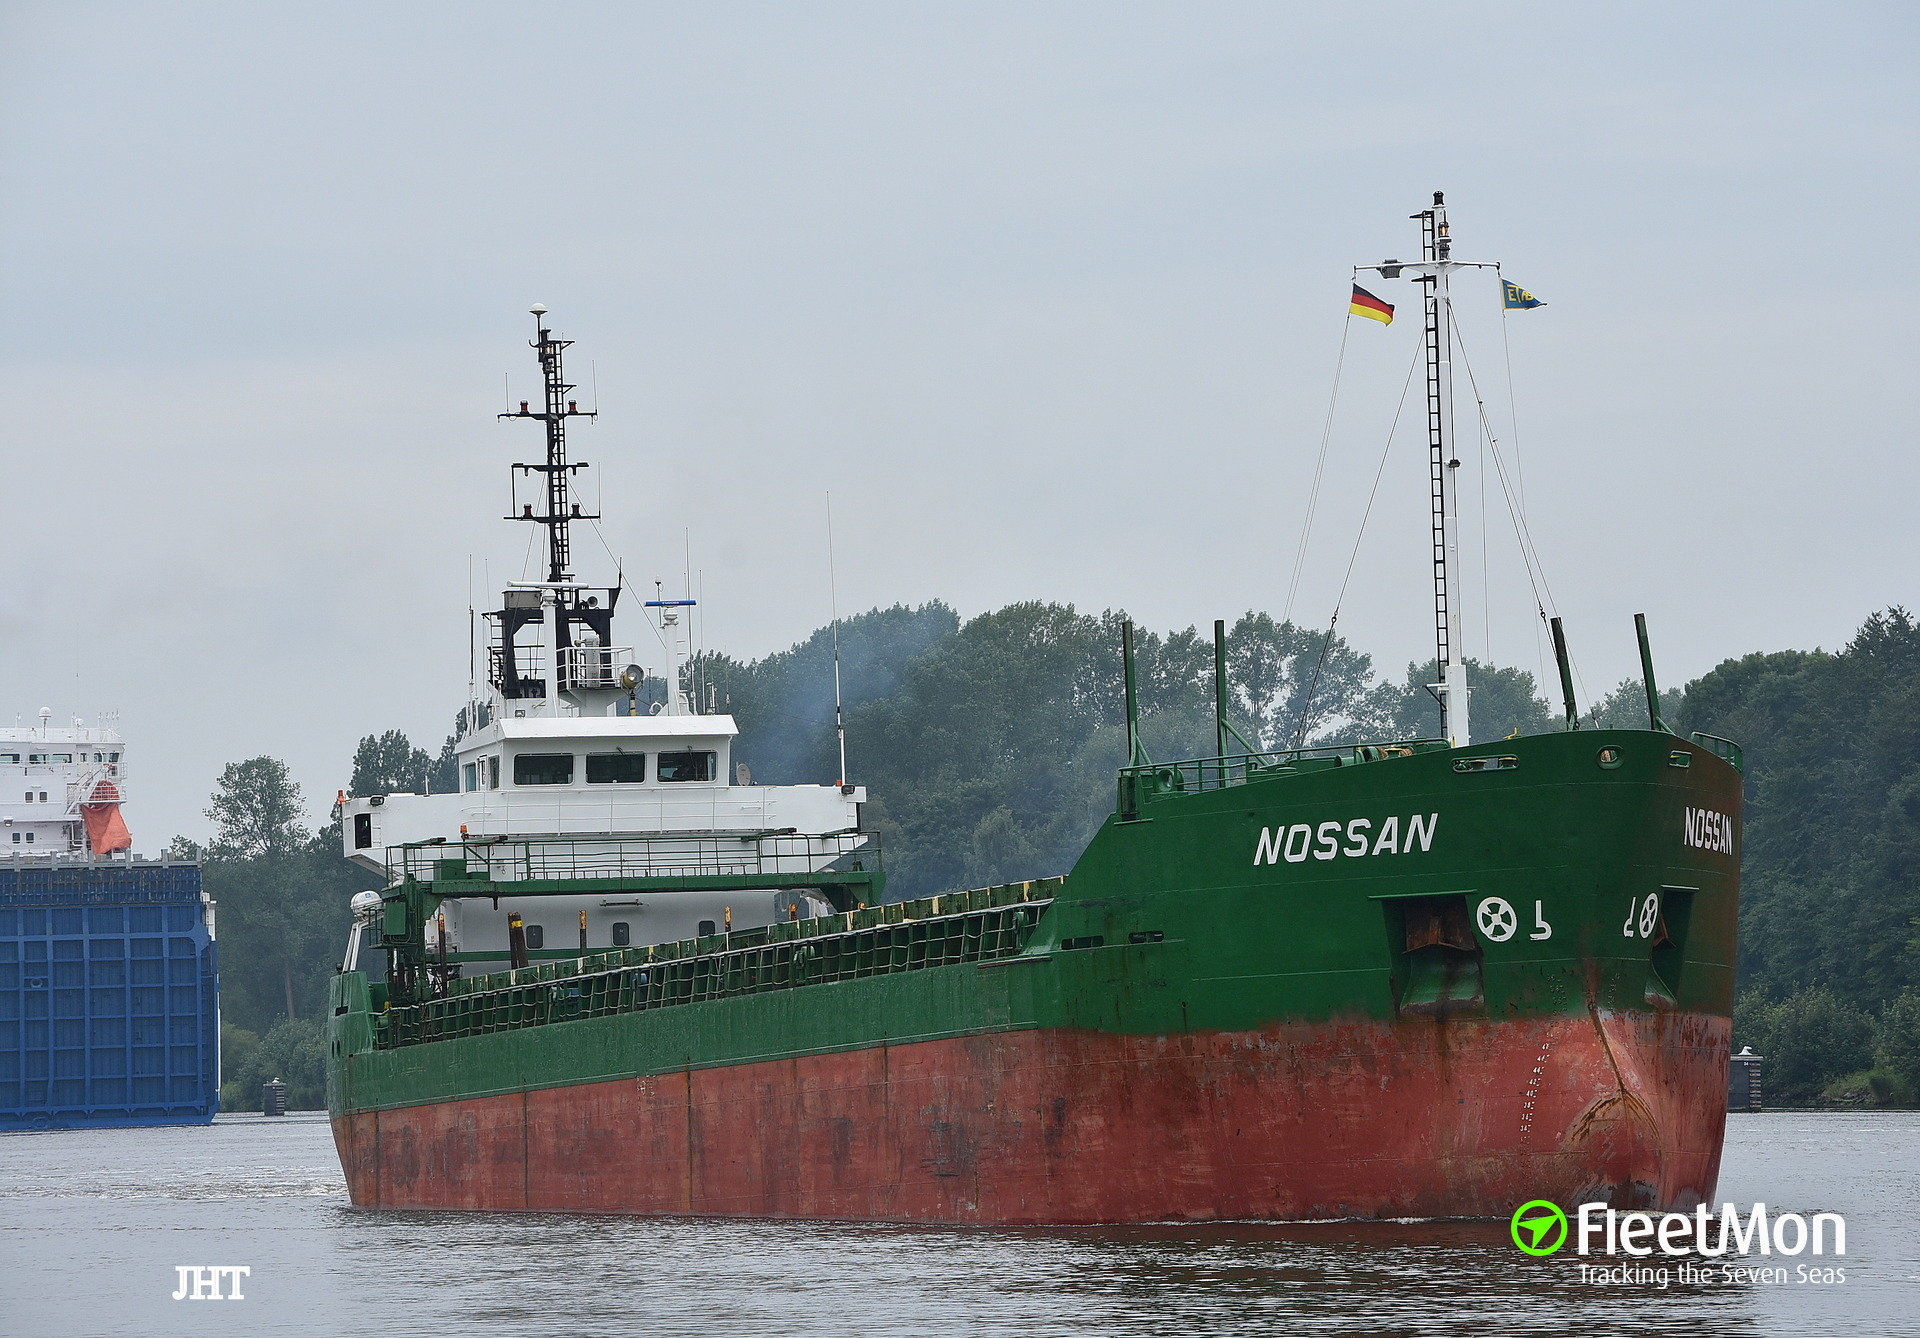 Freighter Nossan aground, holed and sank